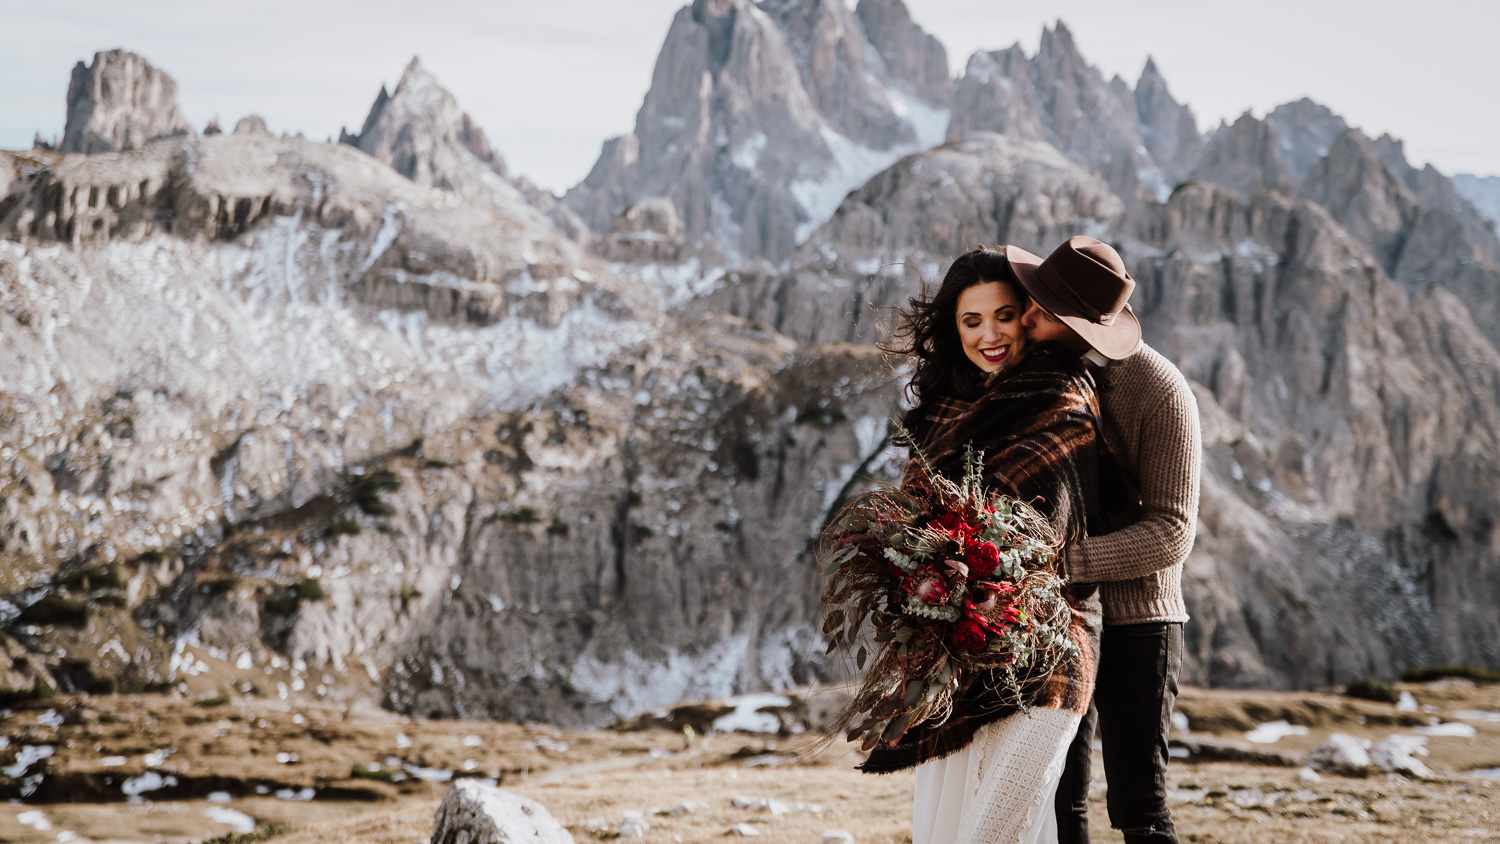 Dolomites Wedding Photographer 14